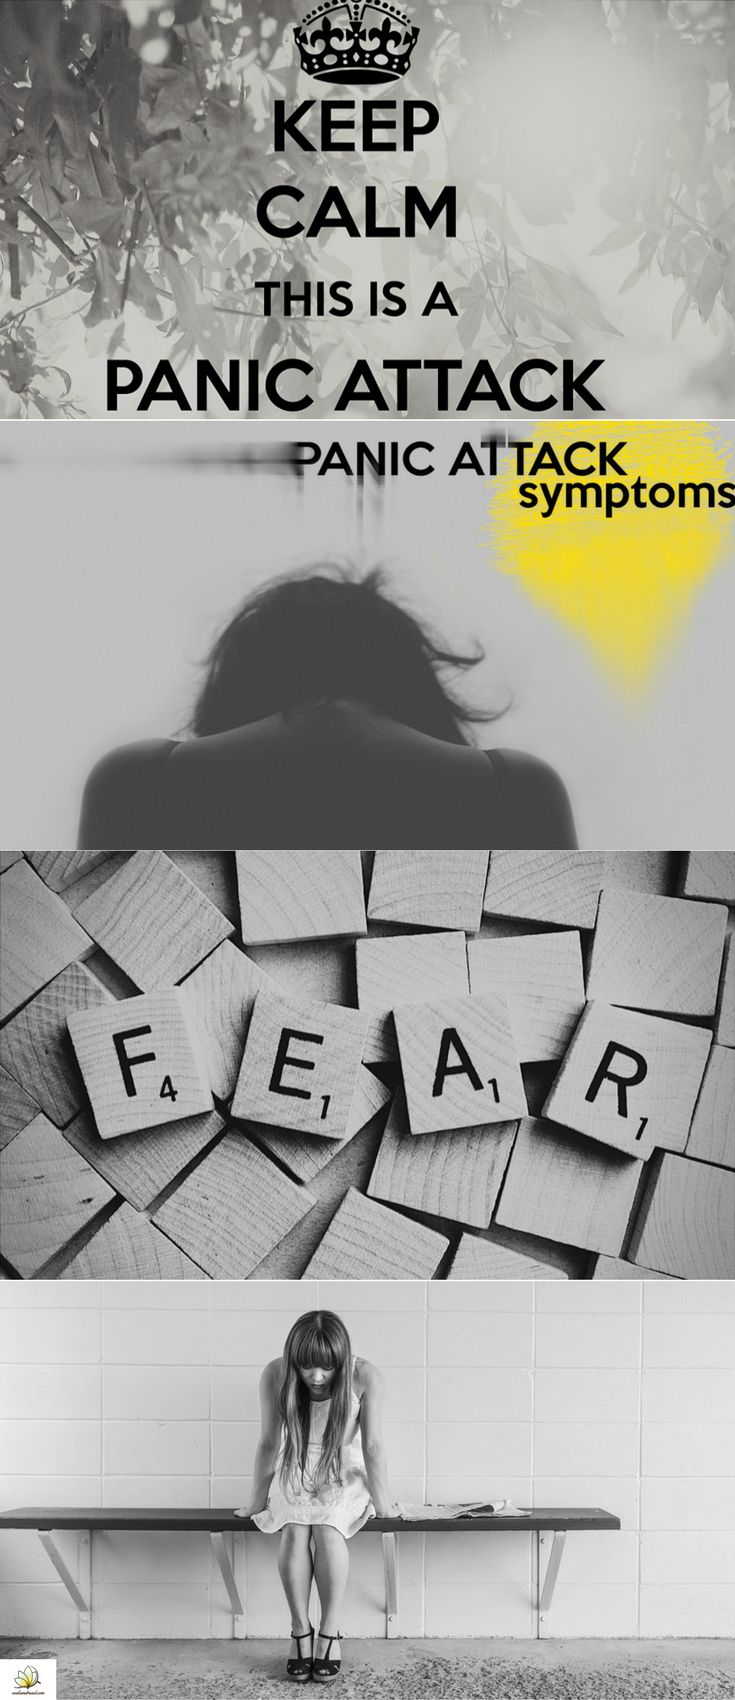 Psychology | relaxation | panic attack | help relaxing | panic disorder | psychotherapy help | panic attack symptoms | depression | anxiety | treatment